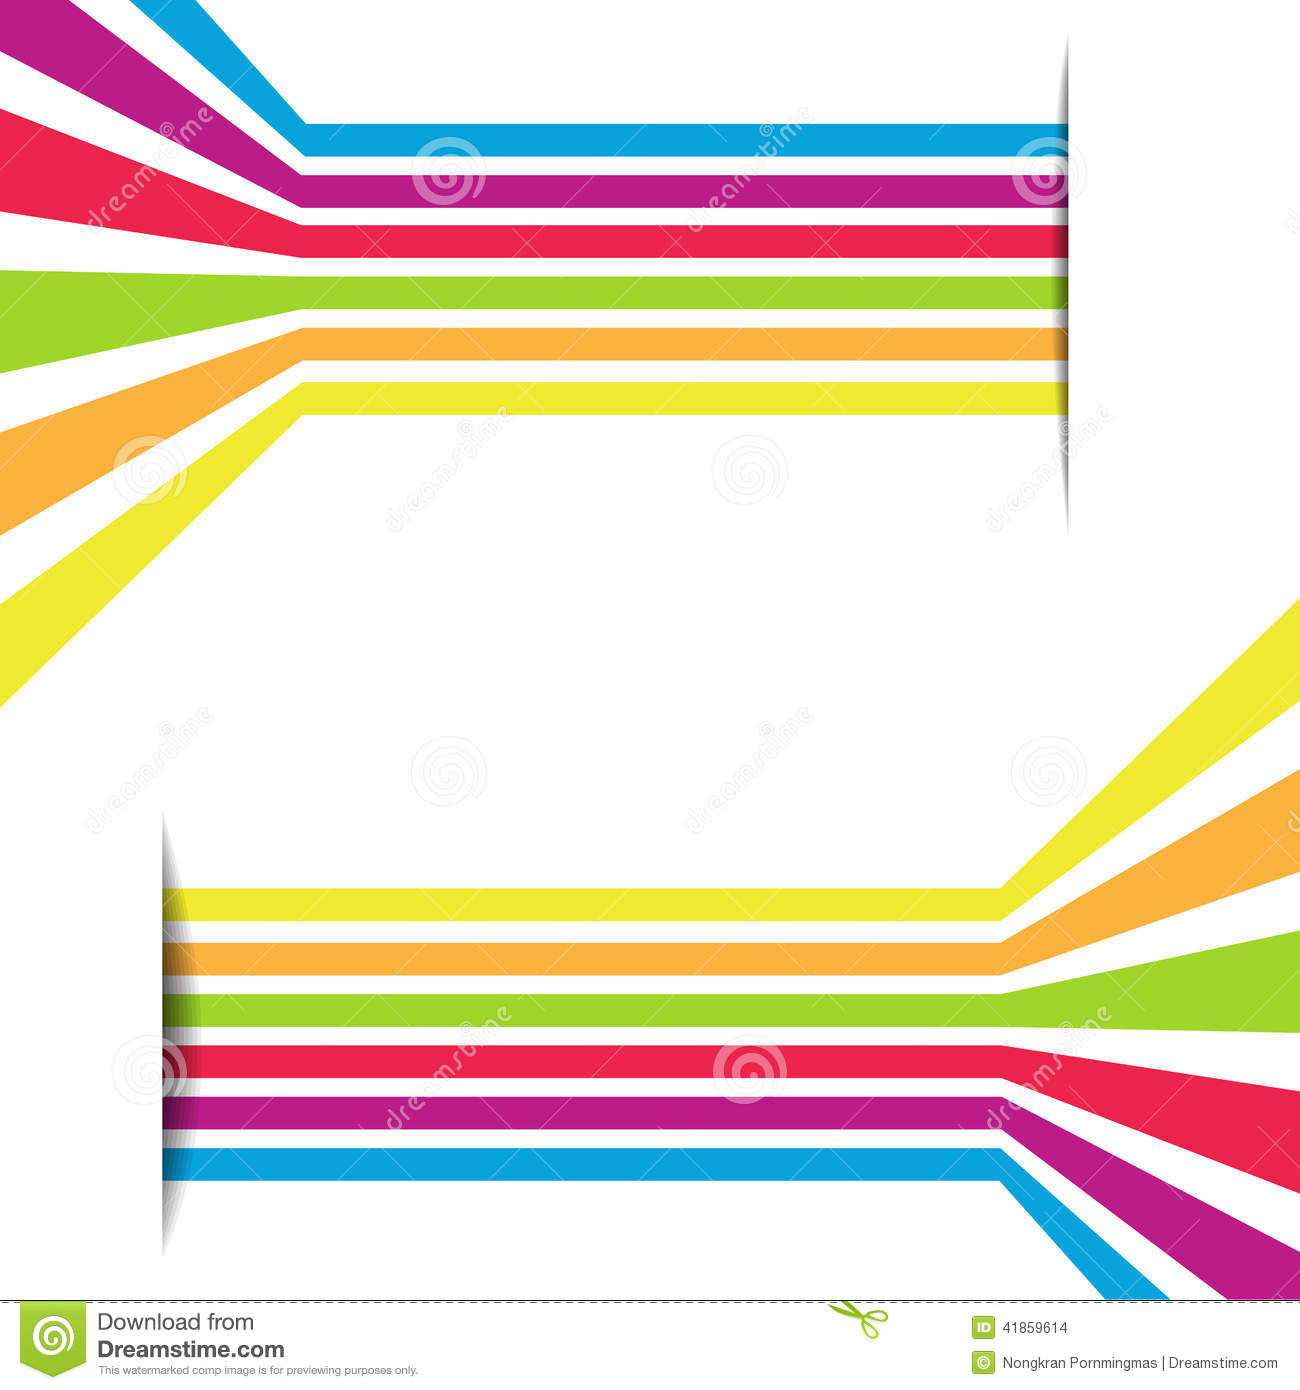 Straight Line Art Vector : Abstract straight lines with blank paper background for